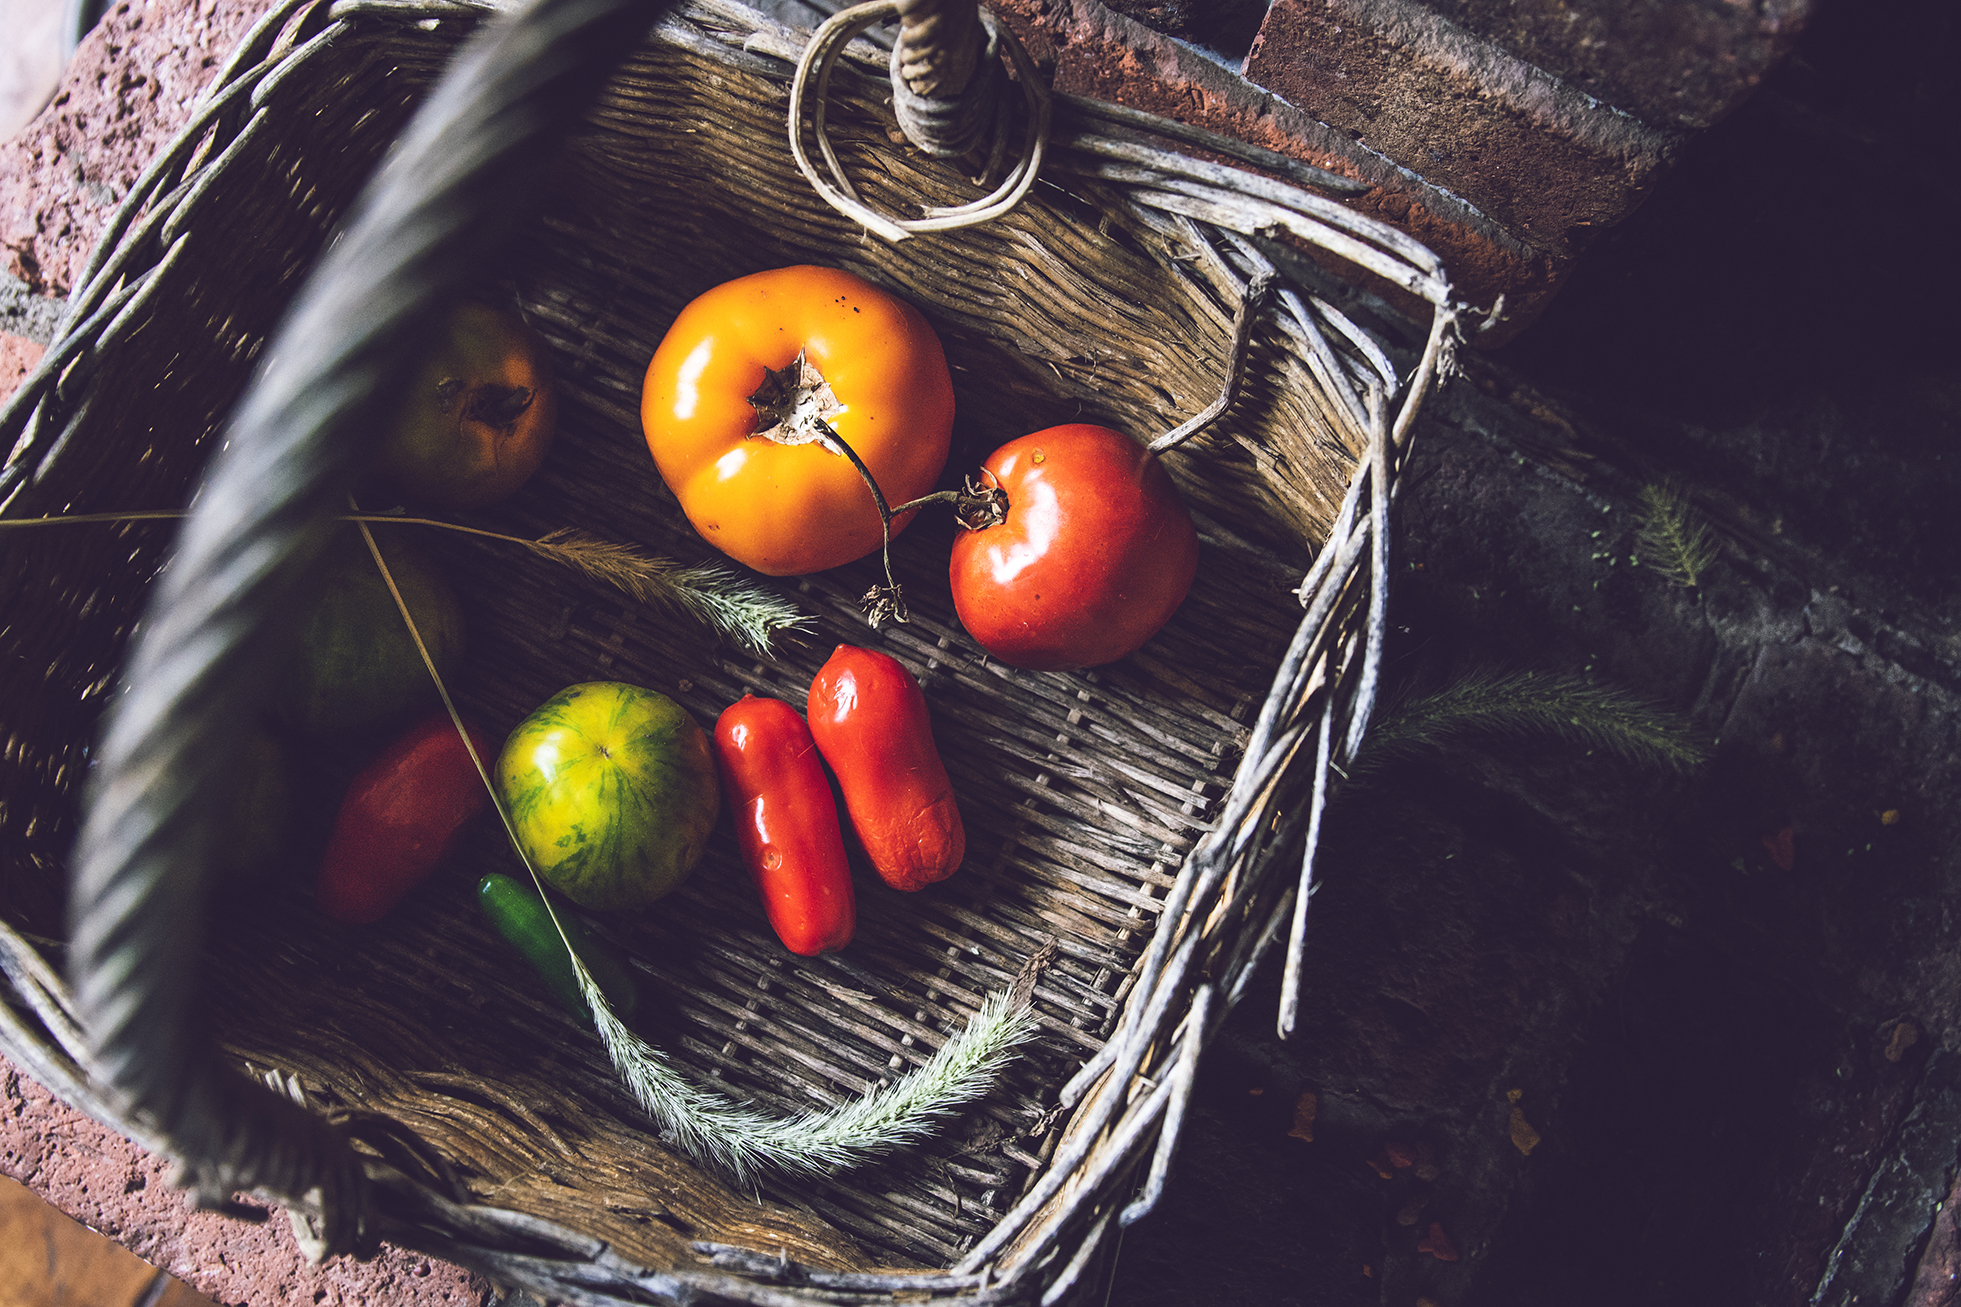 Tomatoes and Peppers Food Photography_WEB.jpg